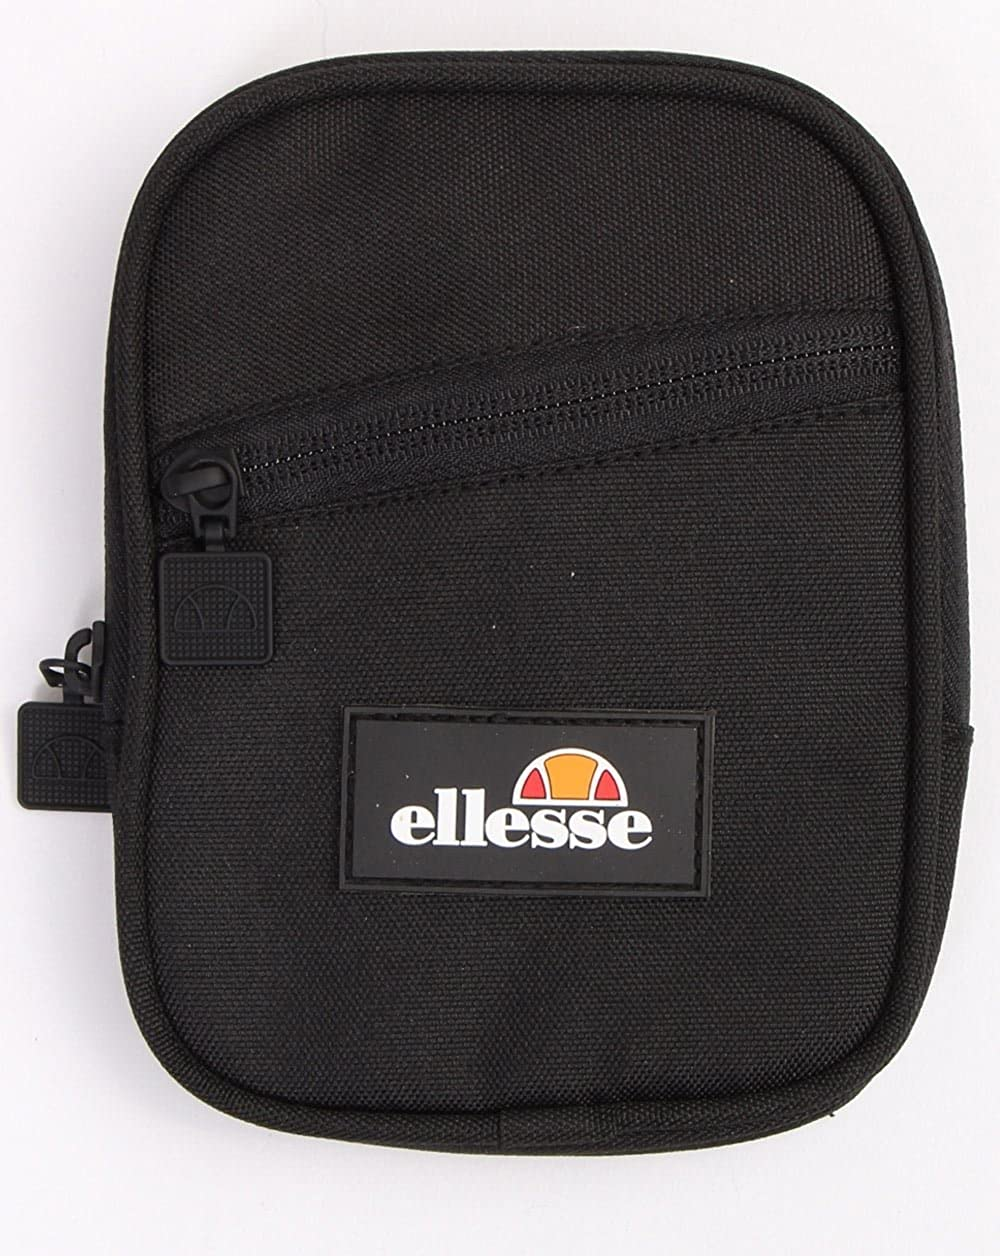 27b1a258 Ellesse Grecco Small Items Bag Black: Amazon.co.uk: Clothing